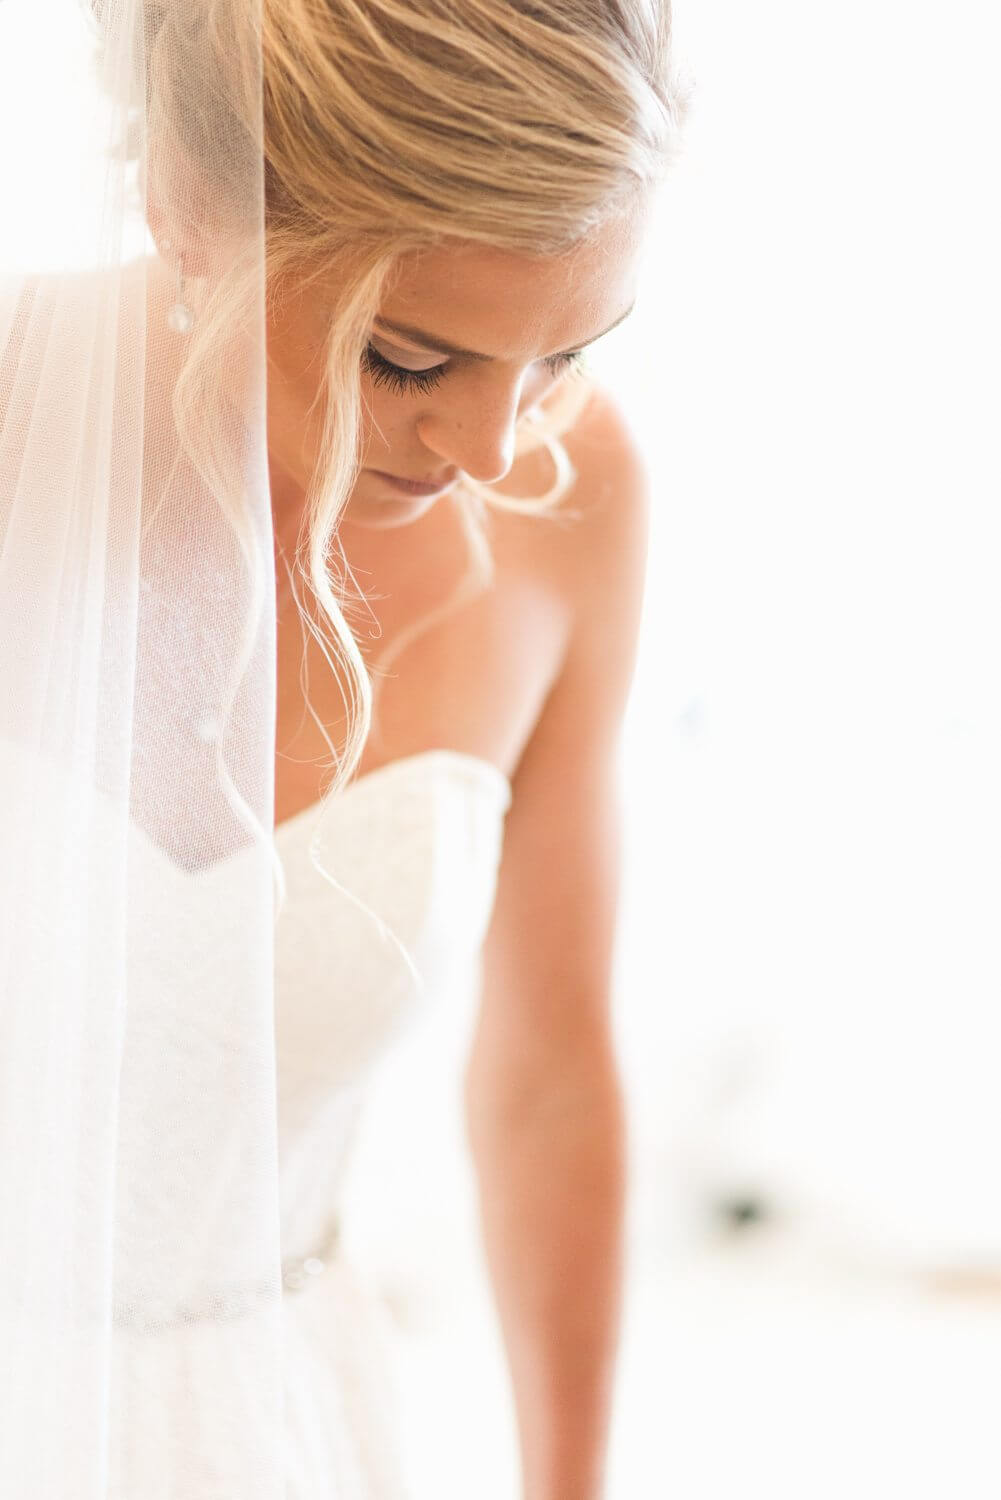 Freas Photography Southernmost House Wedding 40 - Boho Styled Key West Wedding at the Southernmost House in Key West, Florida